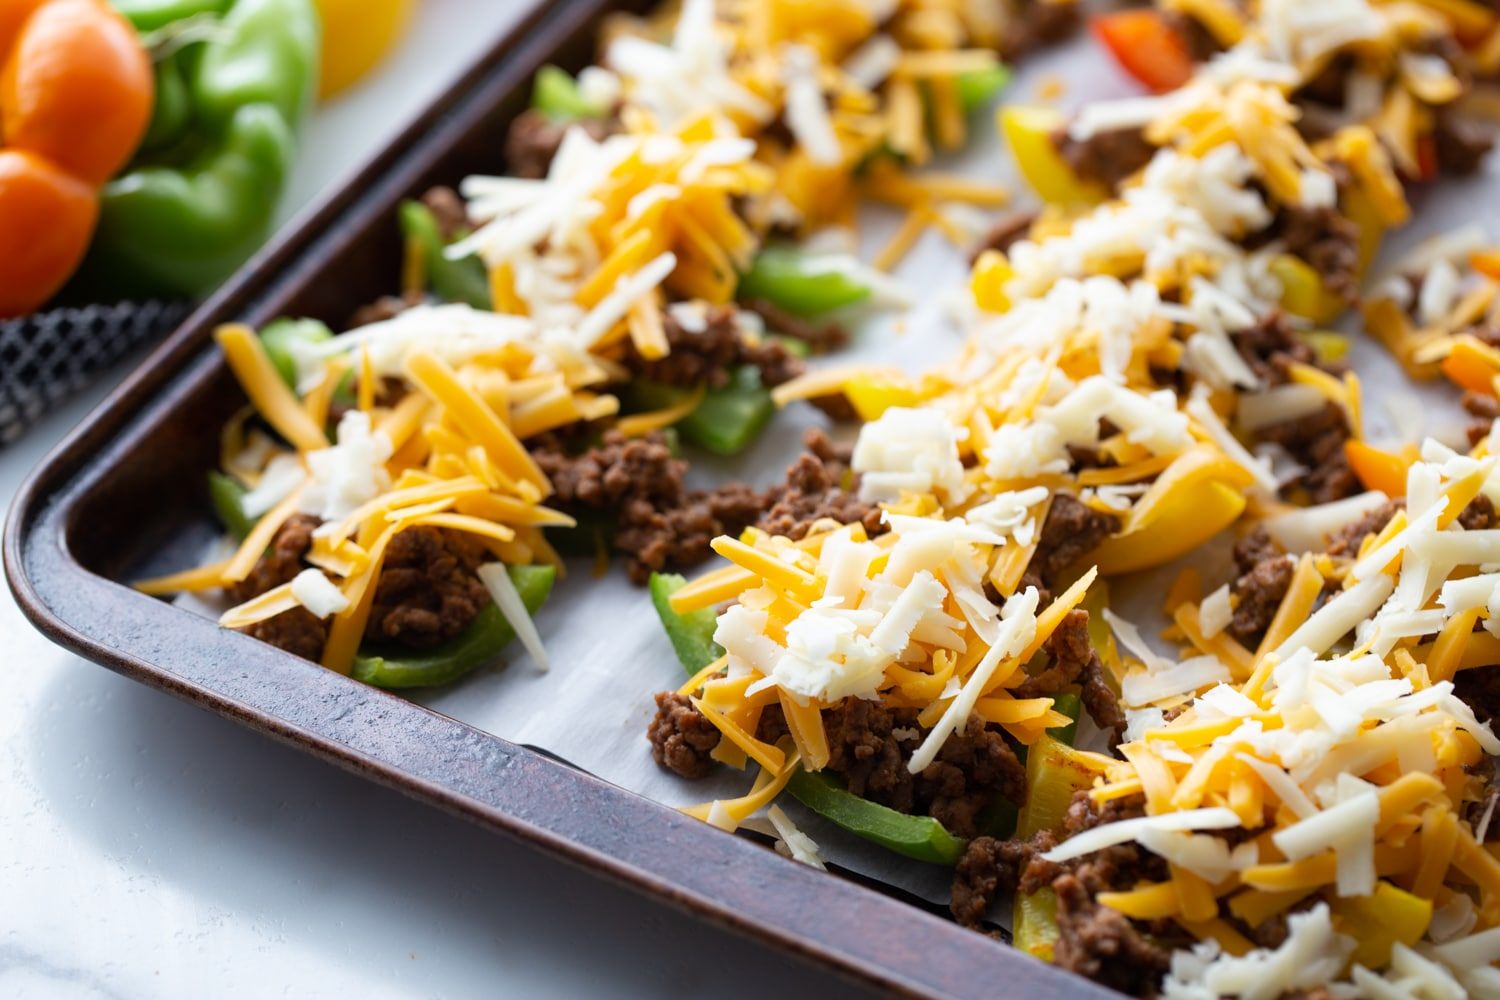 bell pepper slices stuffed with ground beef topped with shredded cheese